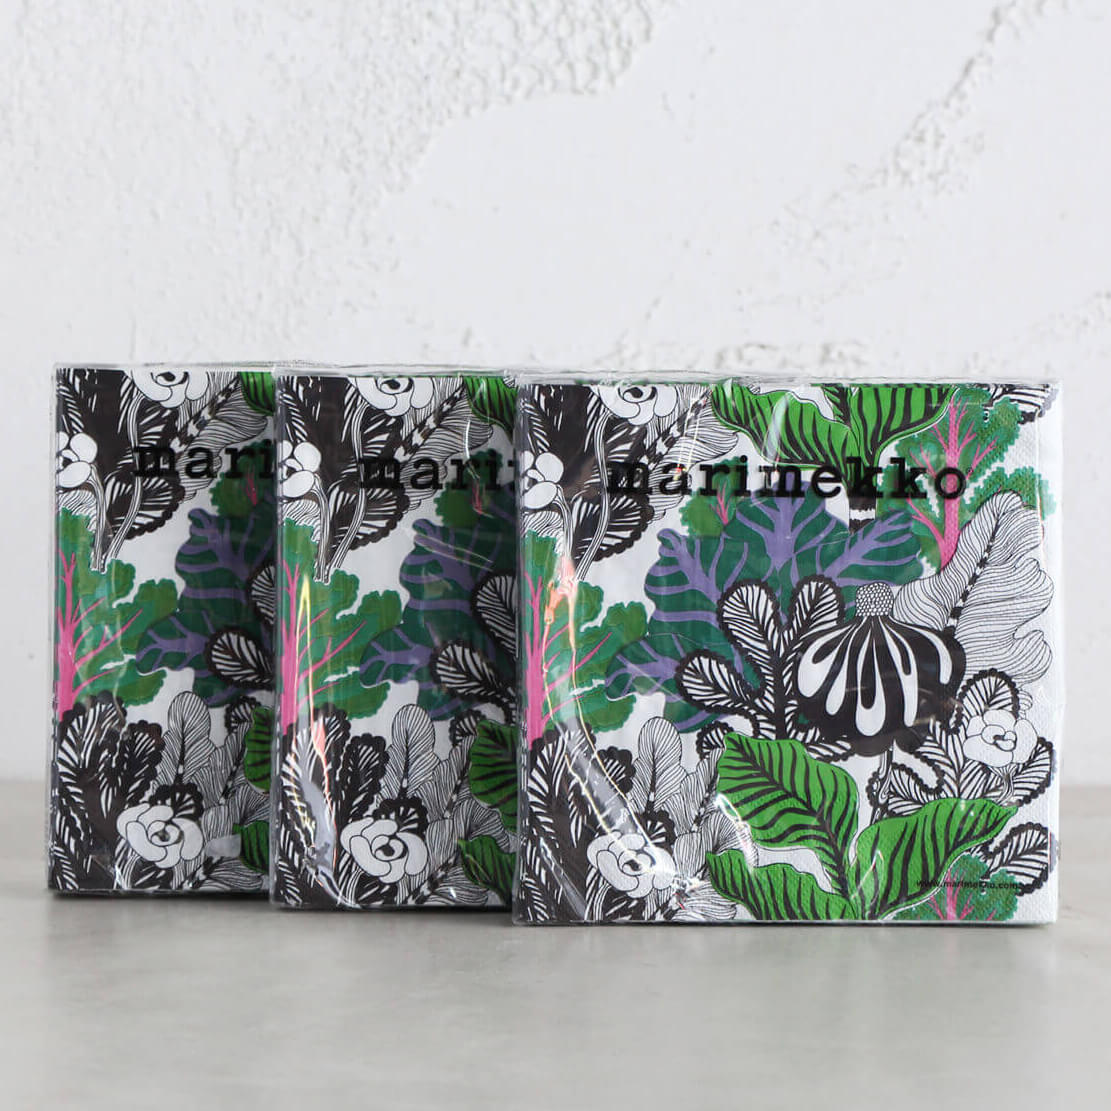 MARIMEKKO | KAALIMETSA GREEN LUNCH NAPKIN | PAPER SERVIETTES BUNDLE OF 3